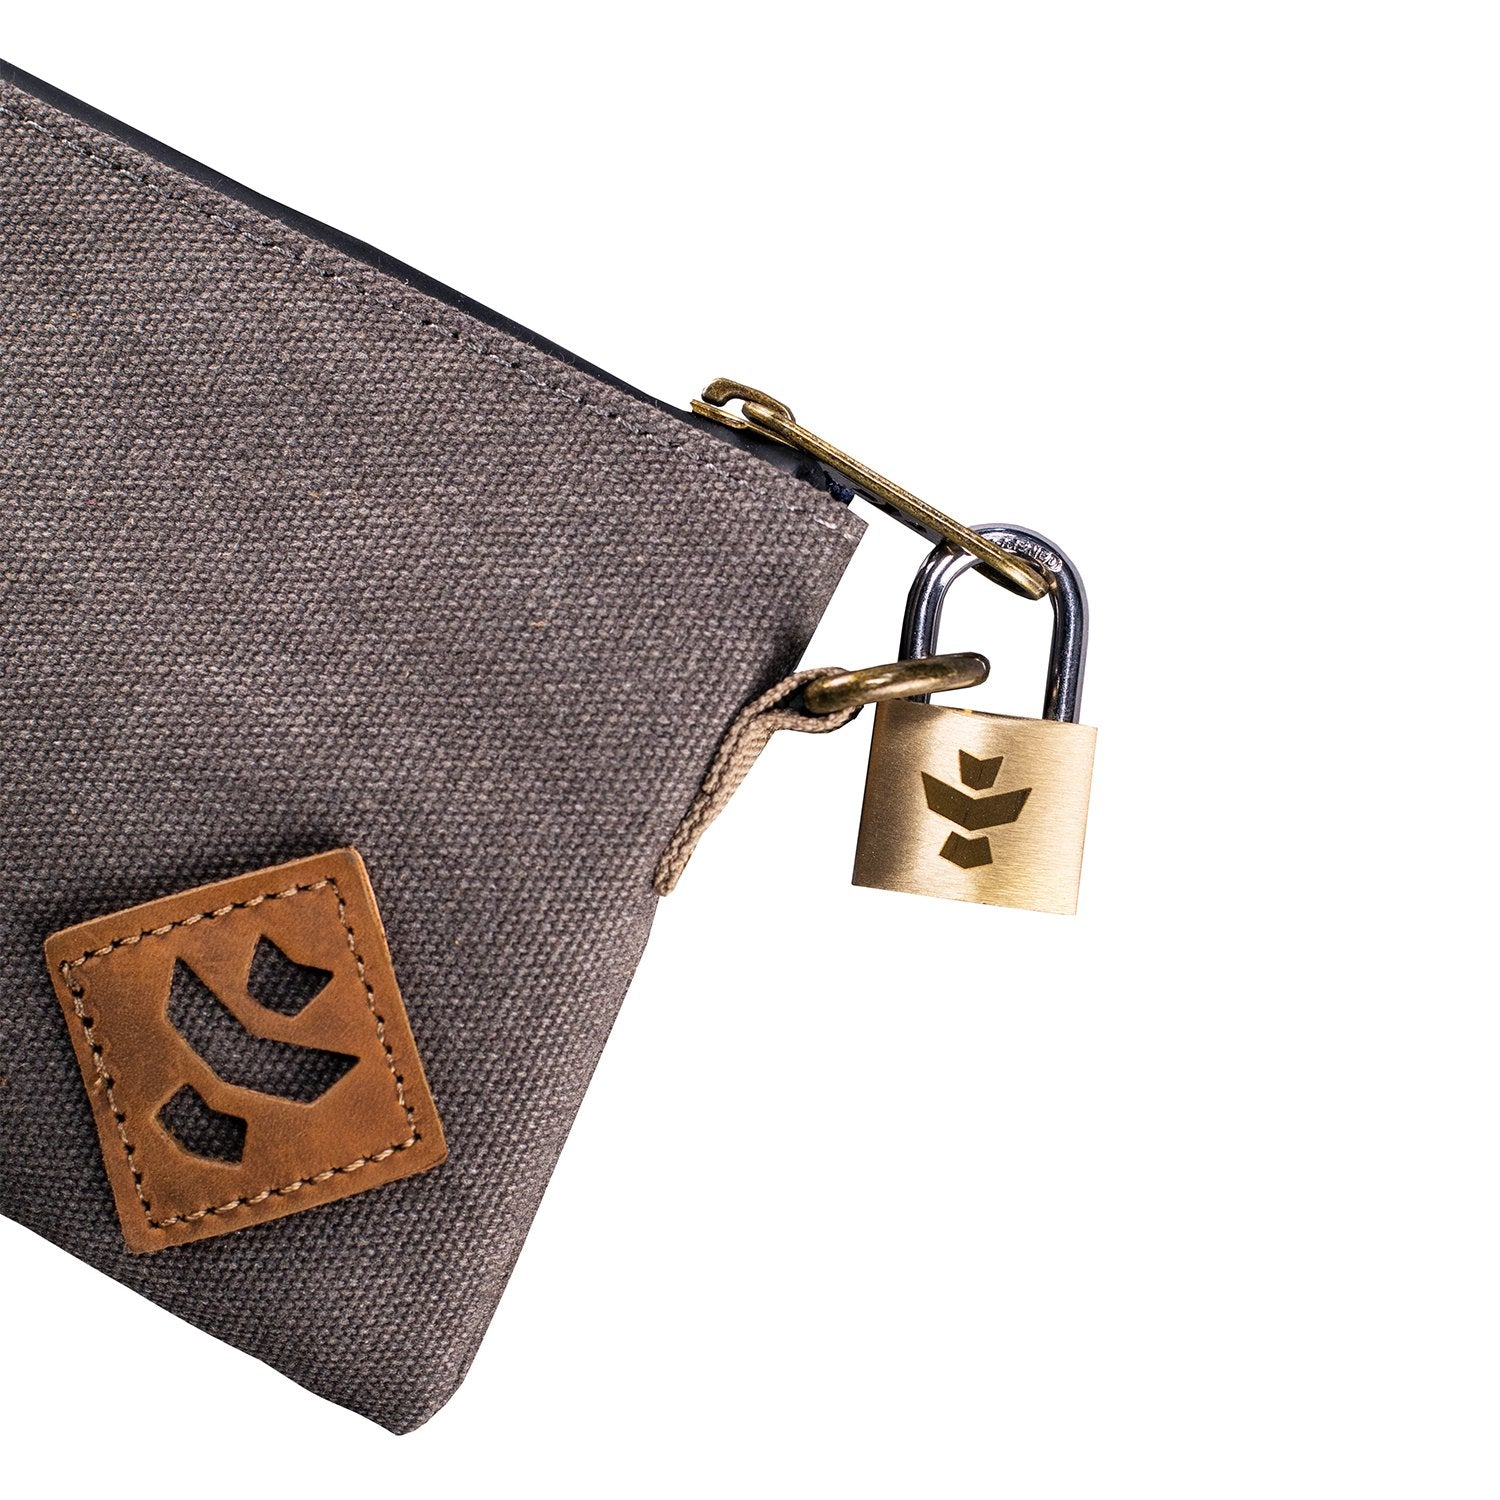 Ash Canvas Smell Proof Water Resistant Small Zipper Bank Bag Lock